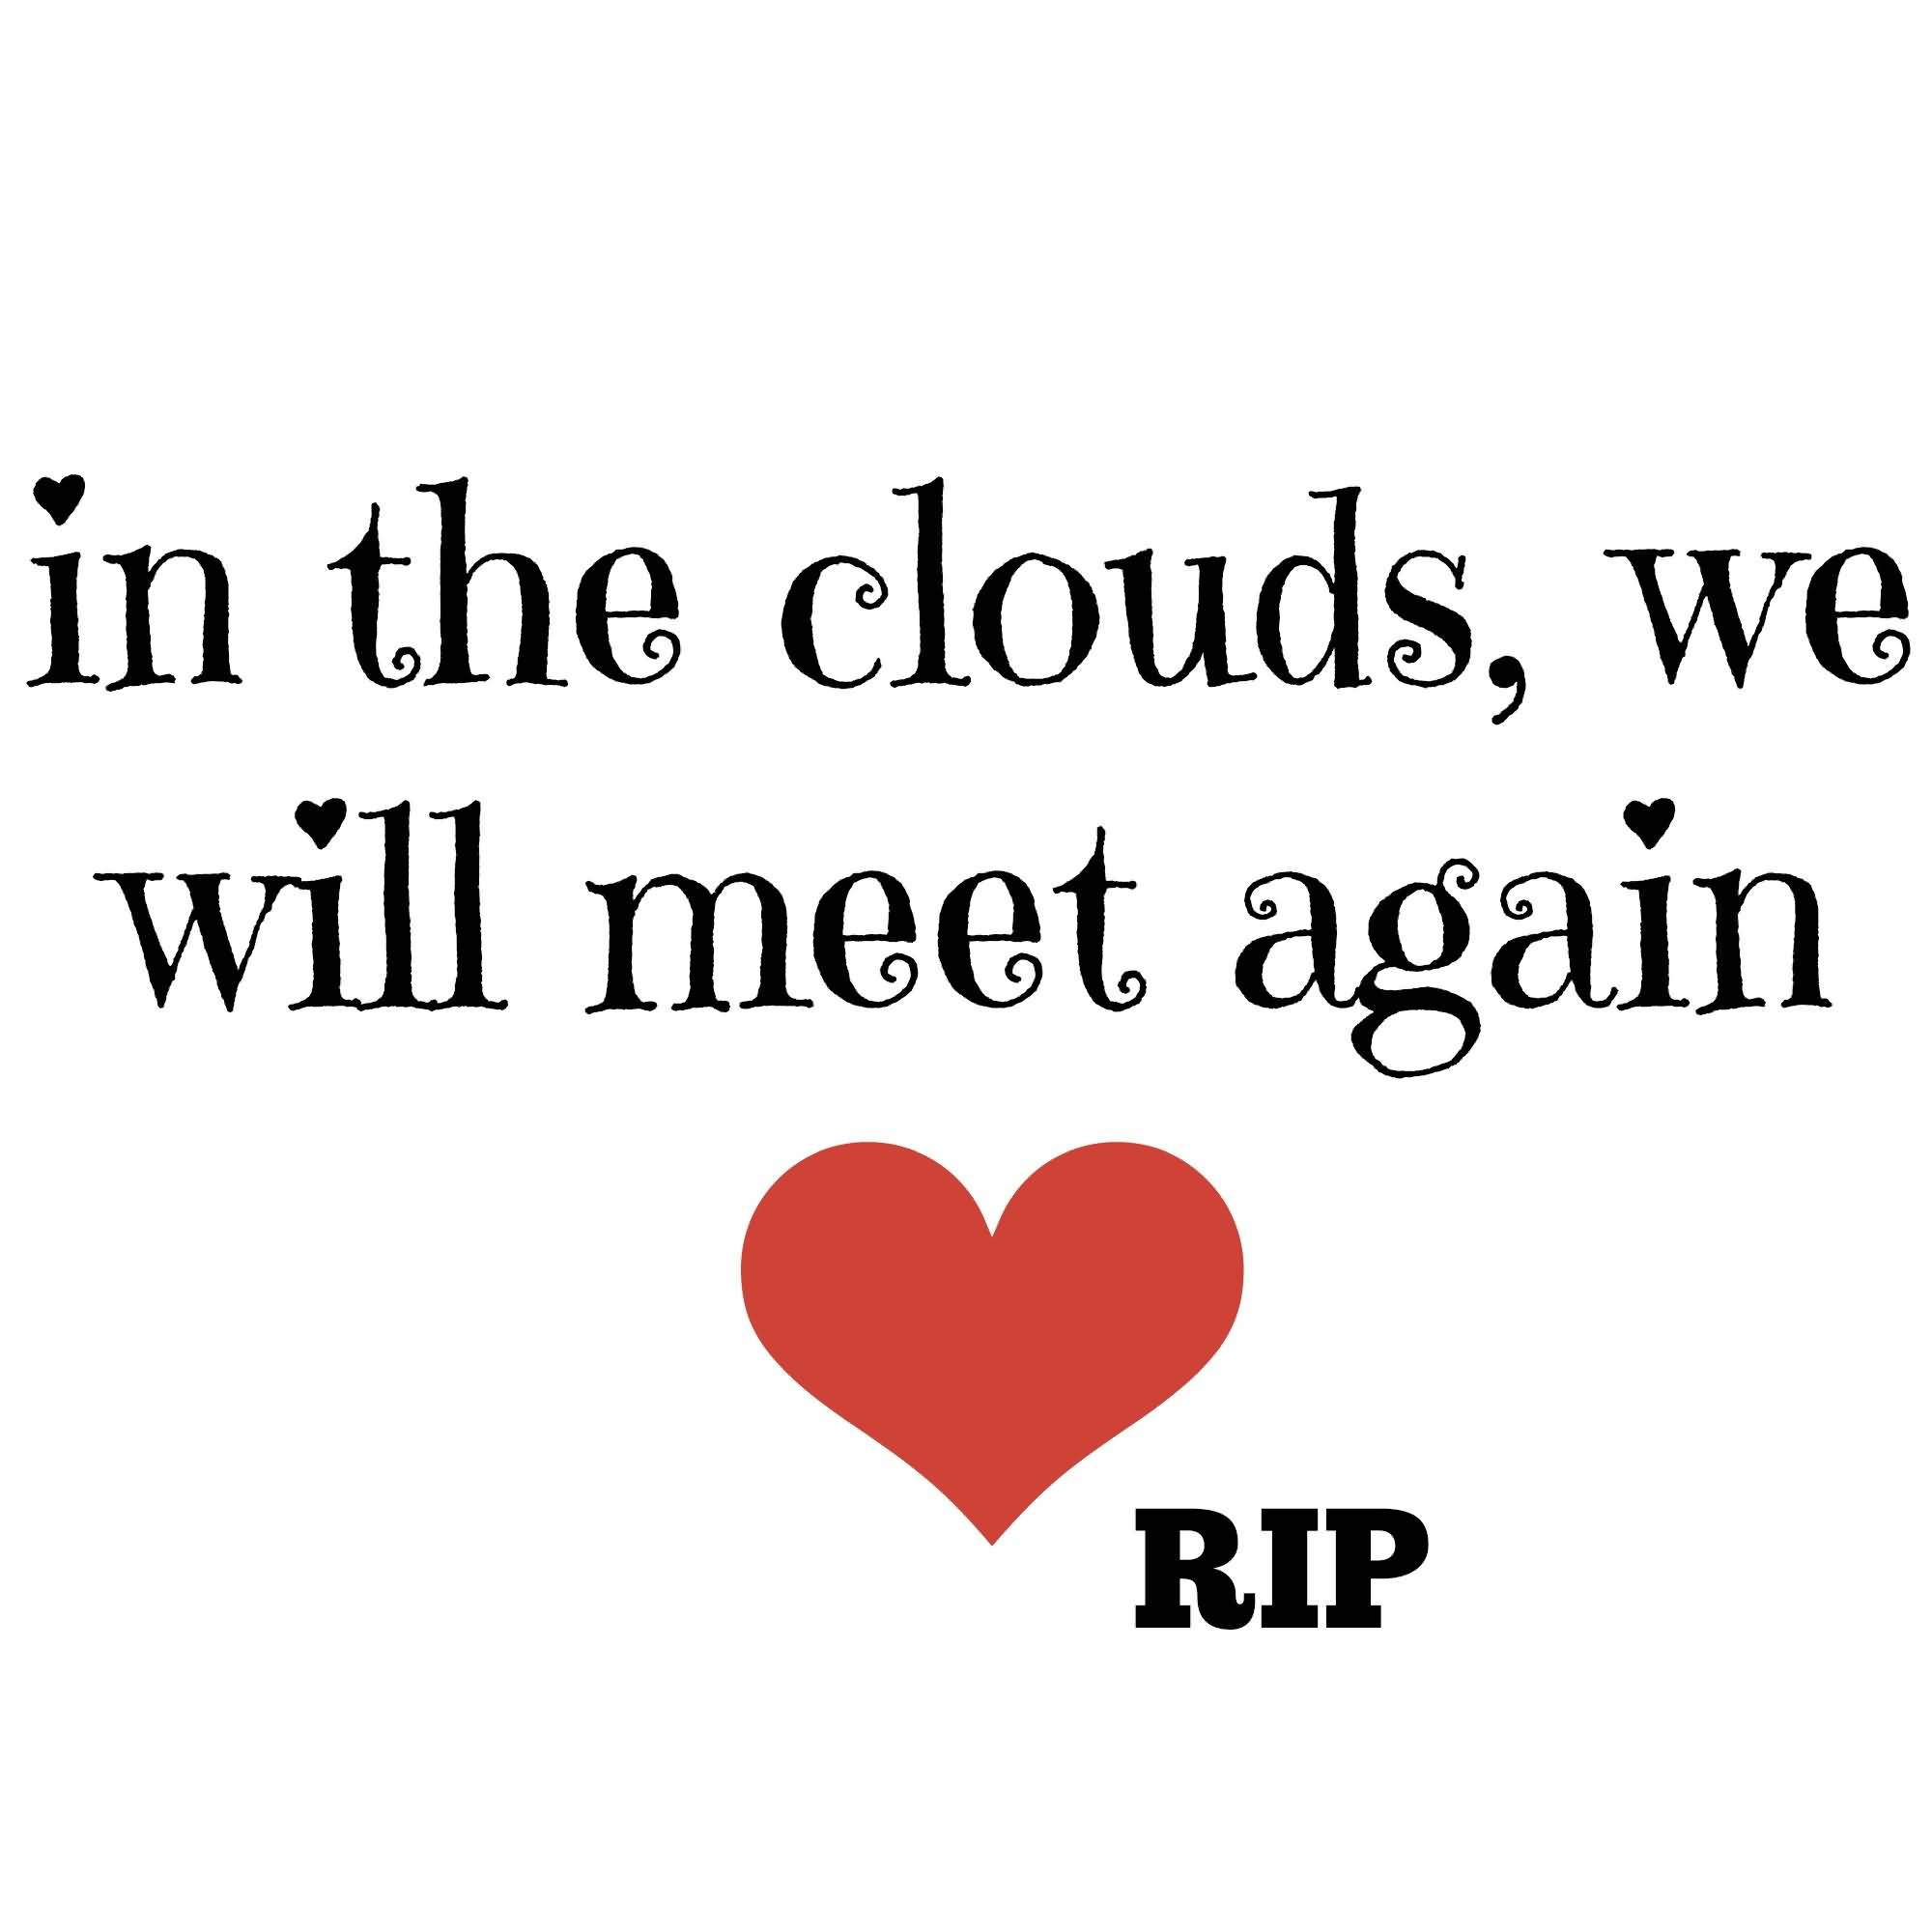 Rip Quotes In the clouds, we will meet again RIP